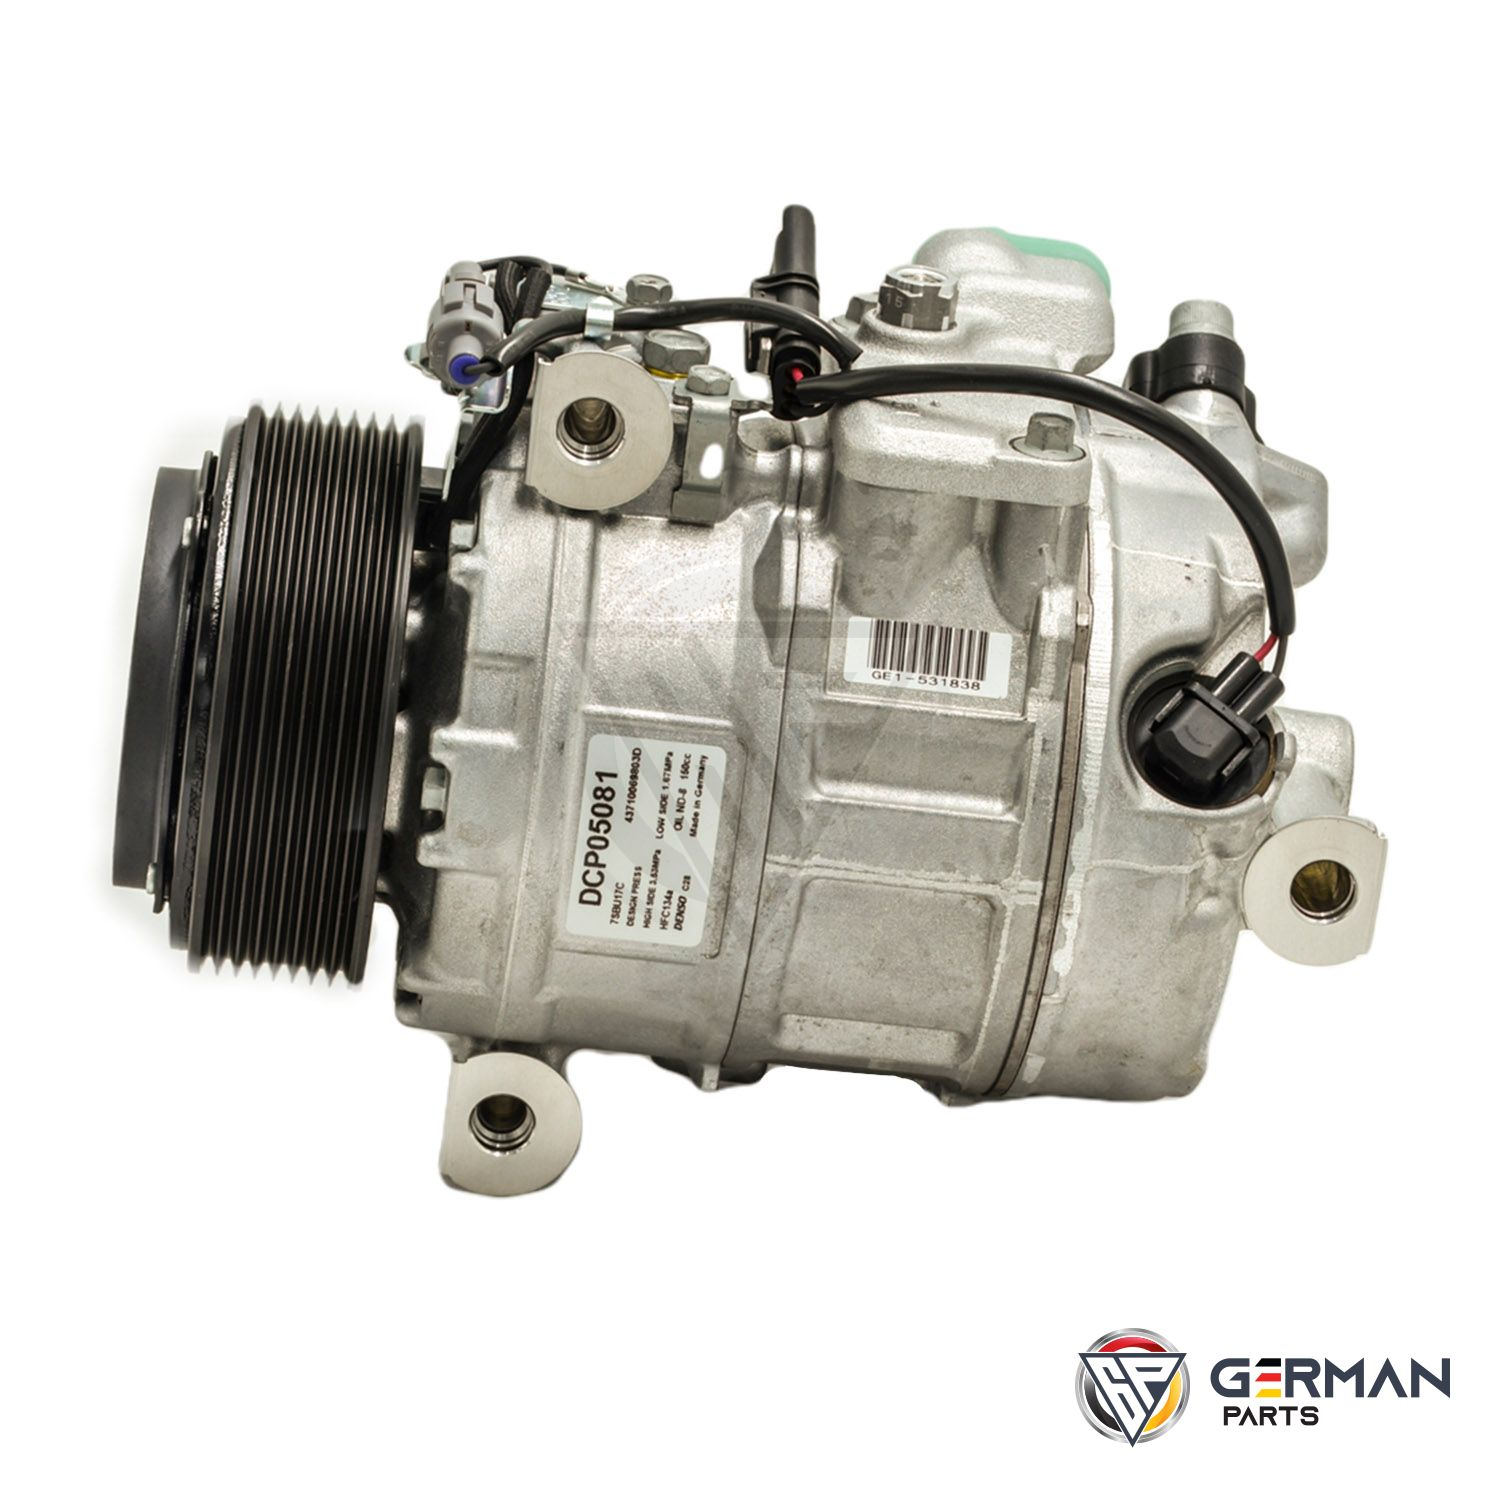 Buy Denso Ac Compressor 64529165808 - German Parts